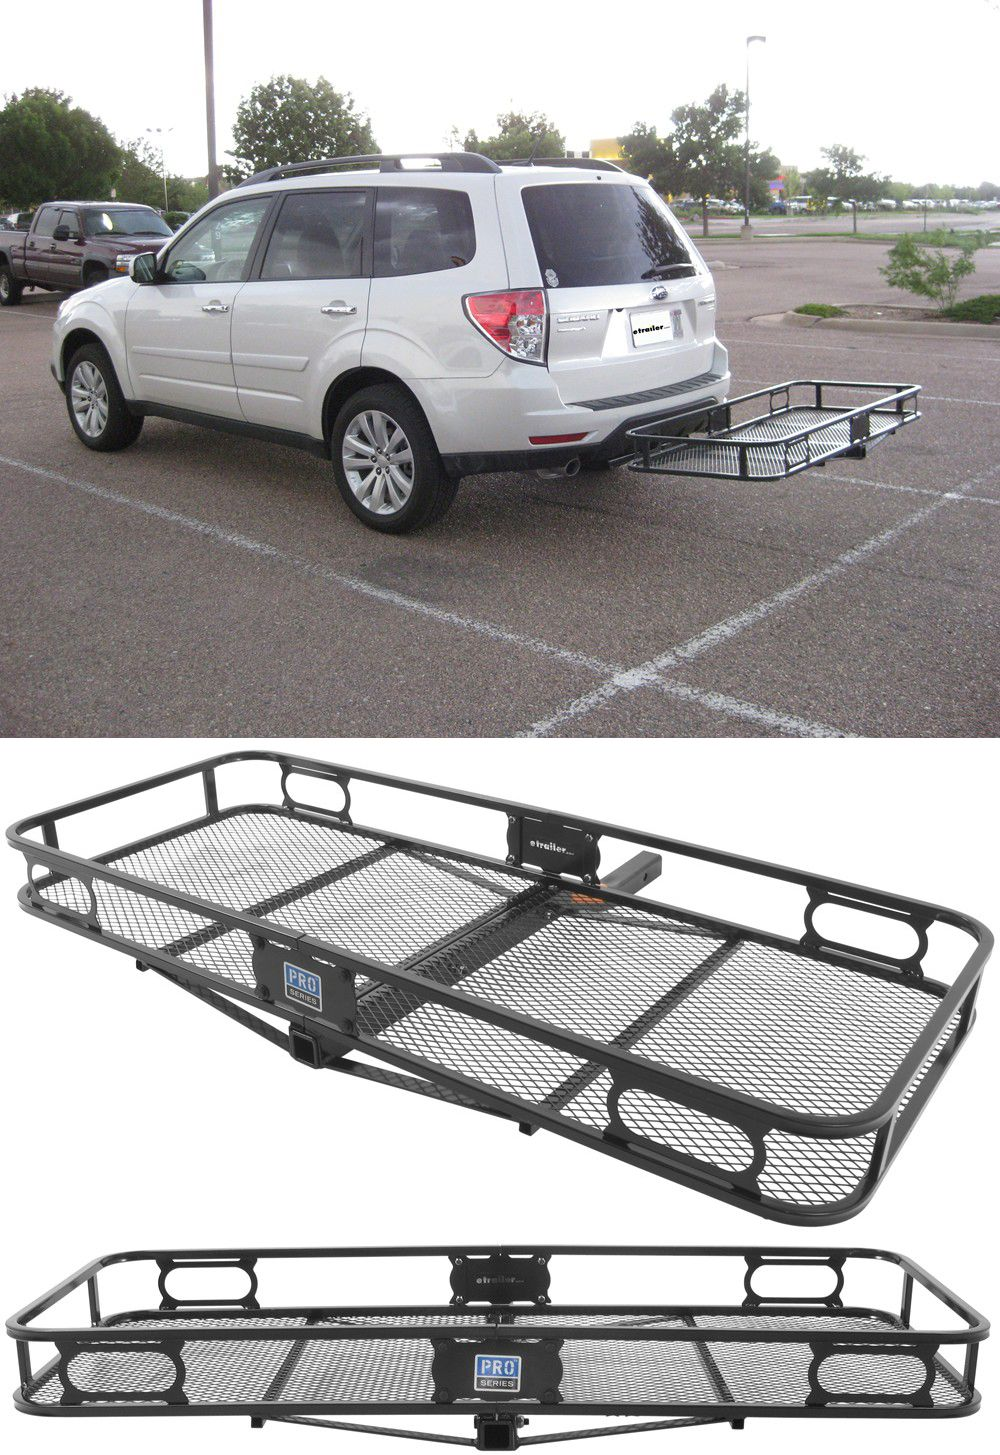 24x60 Reese Cargo Carrier For 2 Hitches Steel 500 Lbs Reese